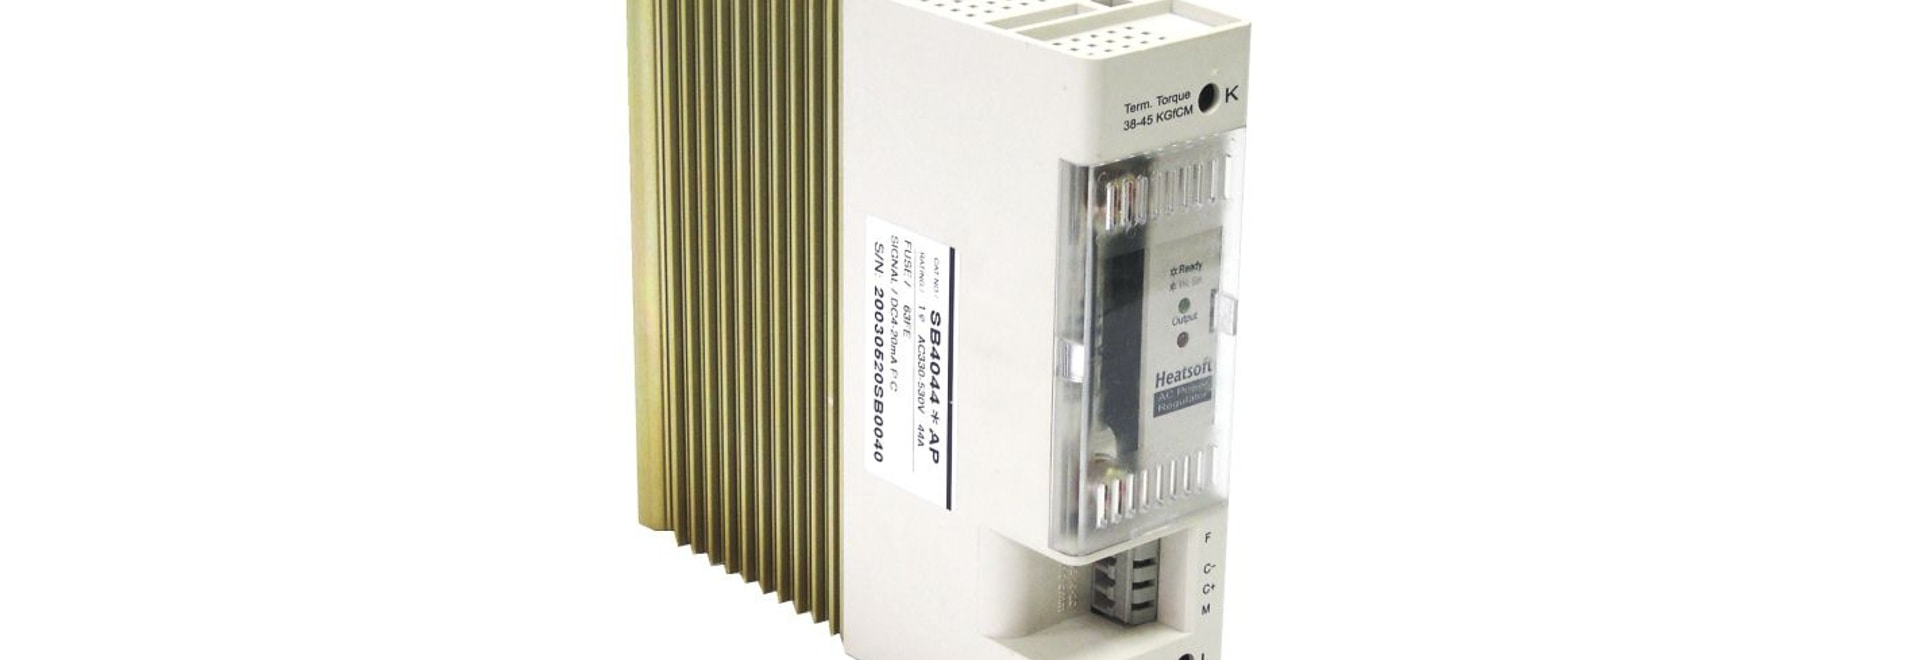 New Solid State Relay By Arico Technology Co Ltd Project